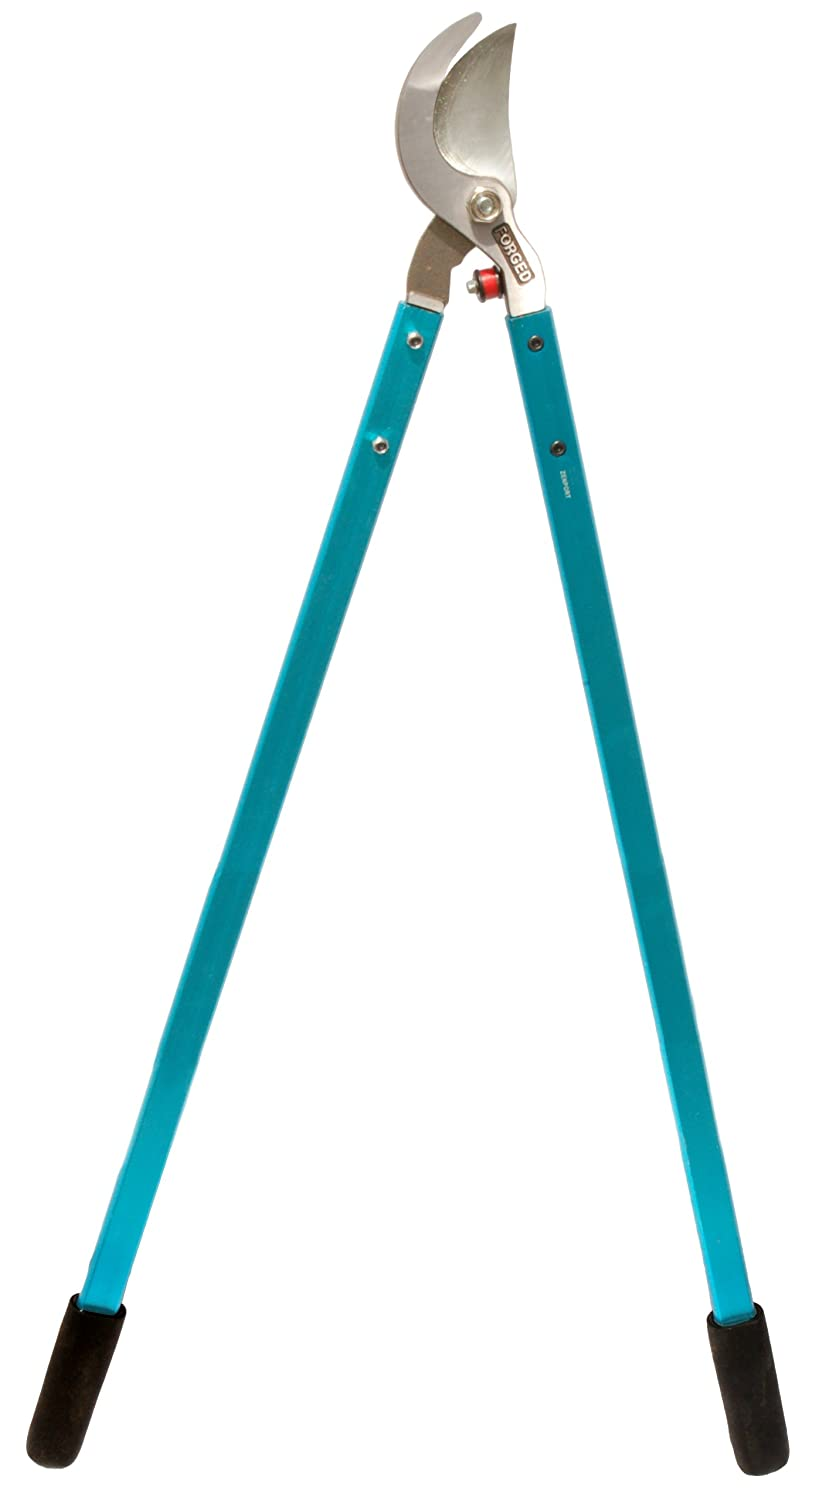 Zenport MV36 Professional Tree Lopper, Orchard and Landscape, 3-Inch Cut, Forged Head, 36-Inch Long